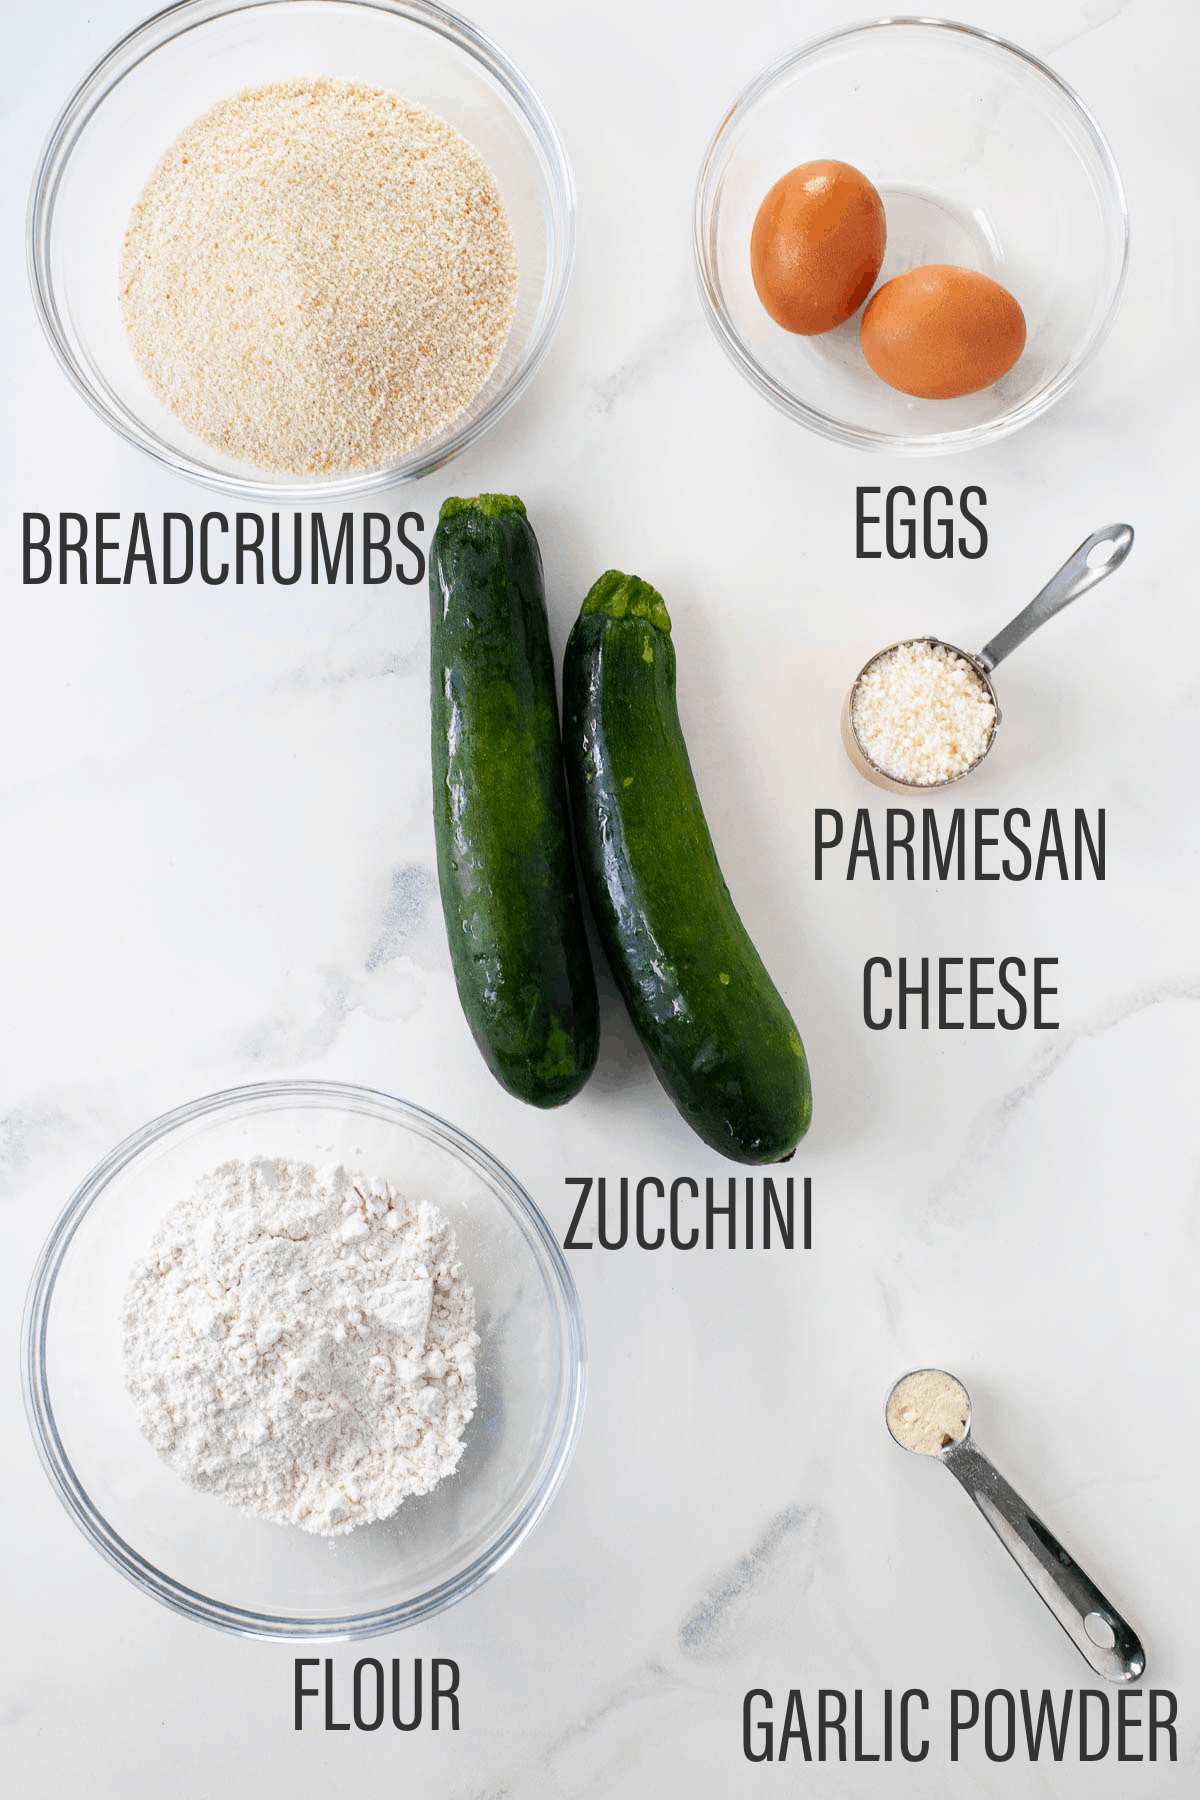 breadcrumbs, eggs, zucchini, parmesan cheese, flour, and garlic powder laid out on counter